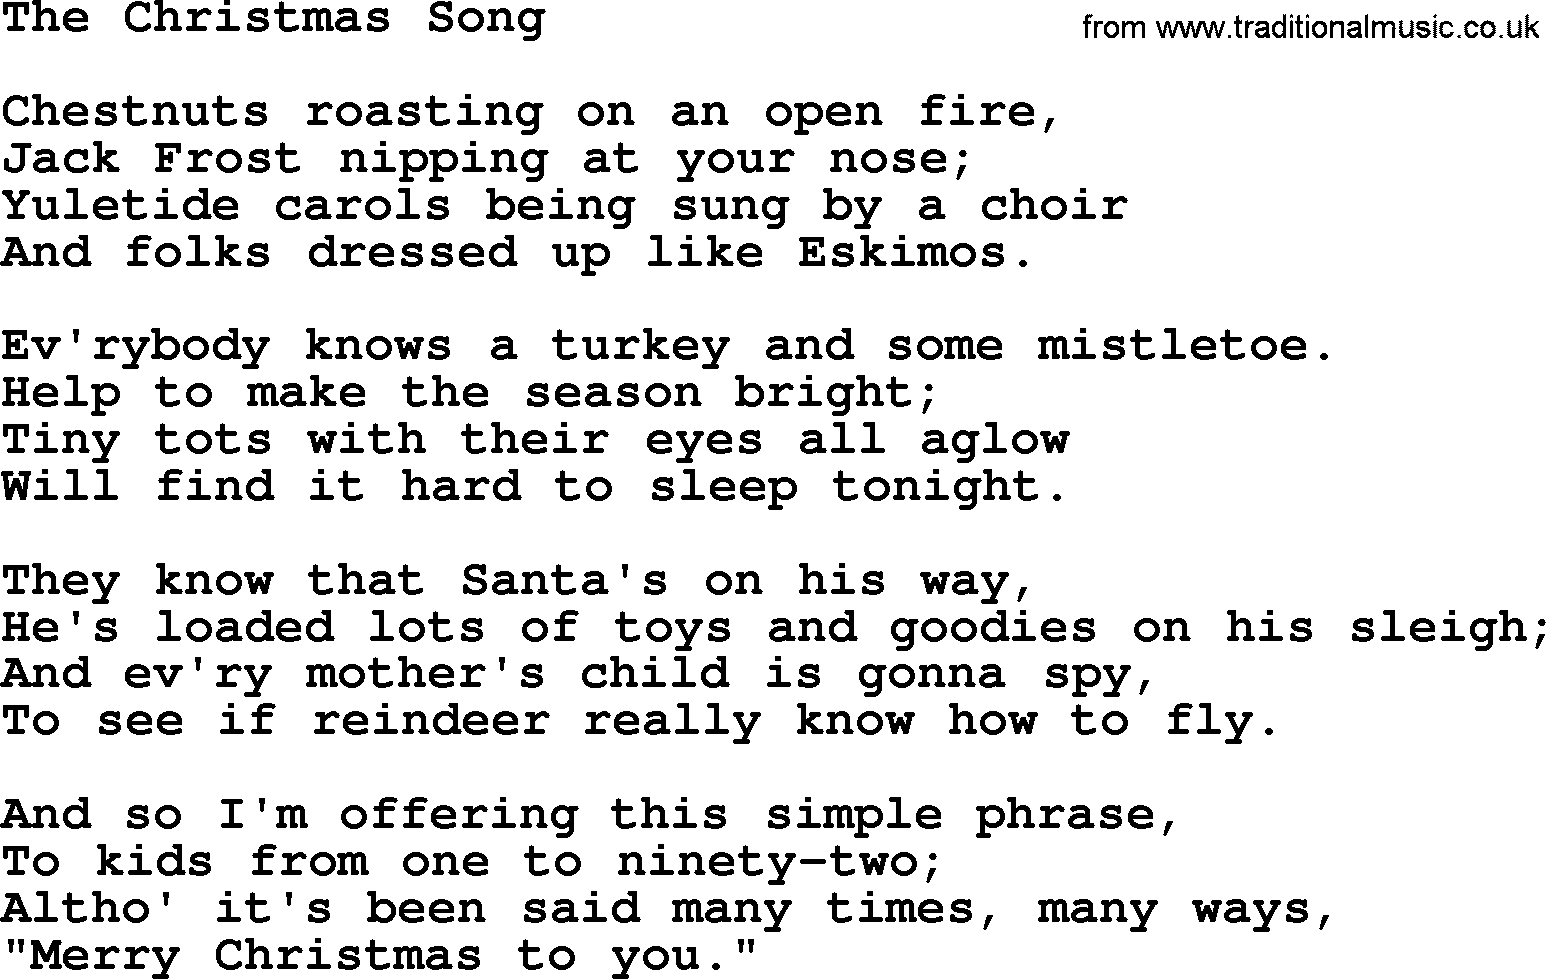 Catholic Hymns, Song: The Christmas Song - lyrics and PDF